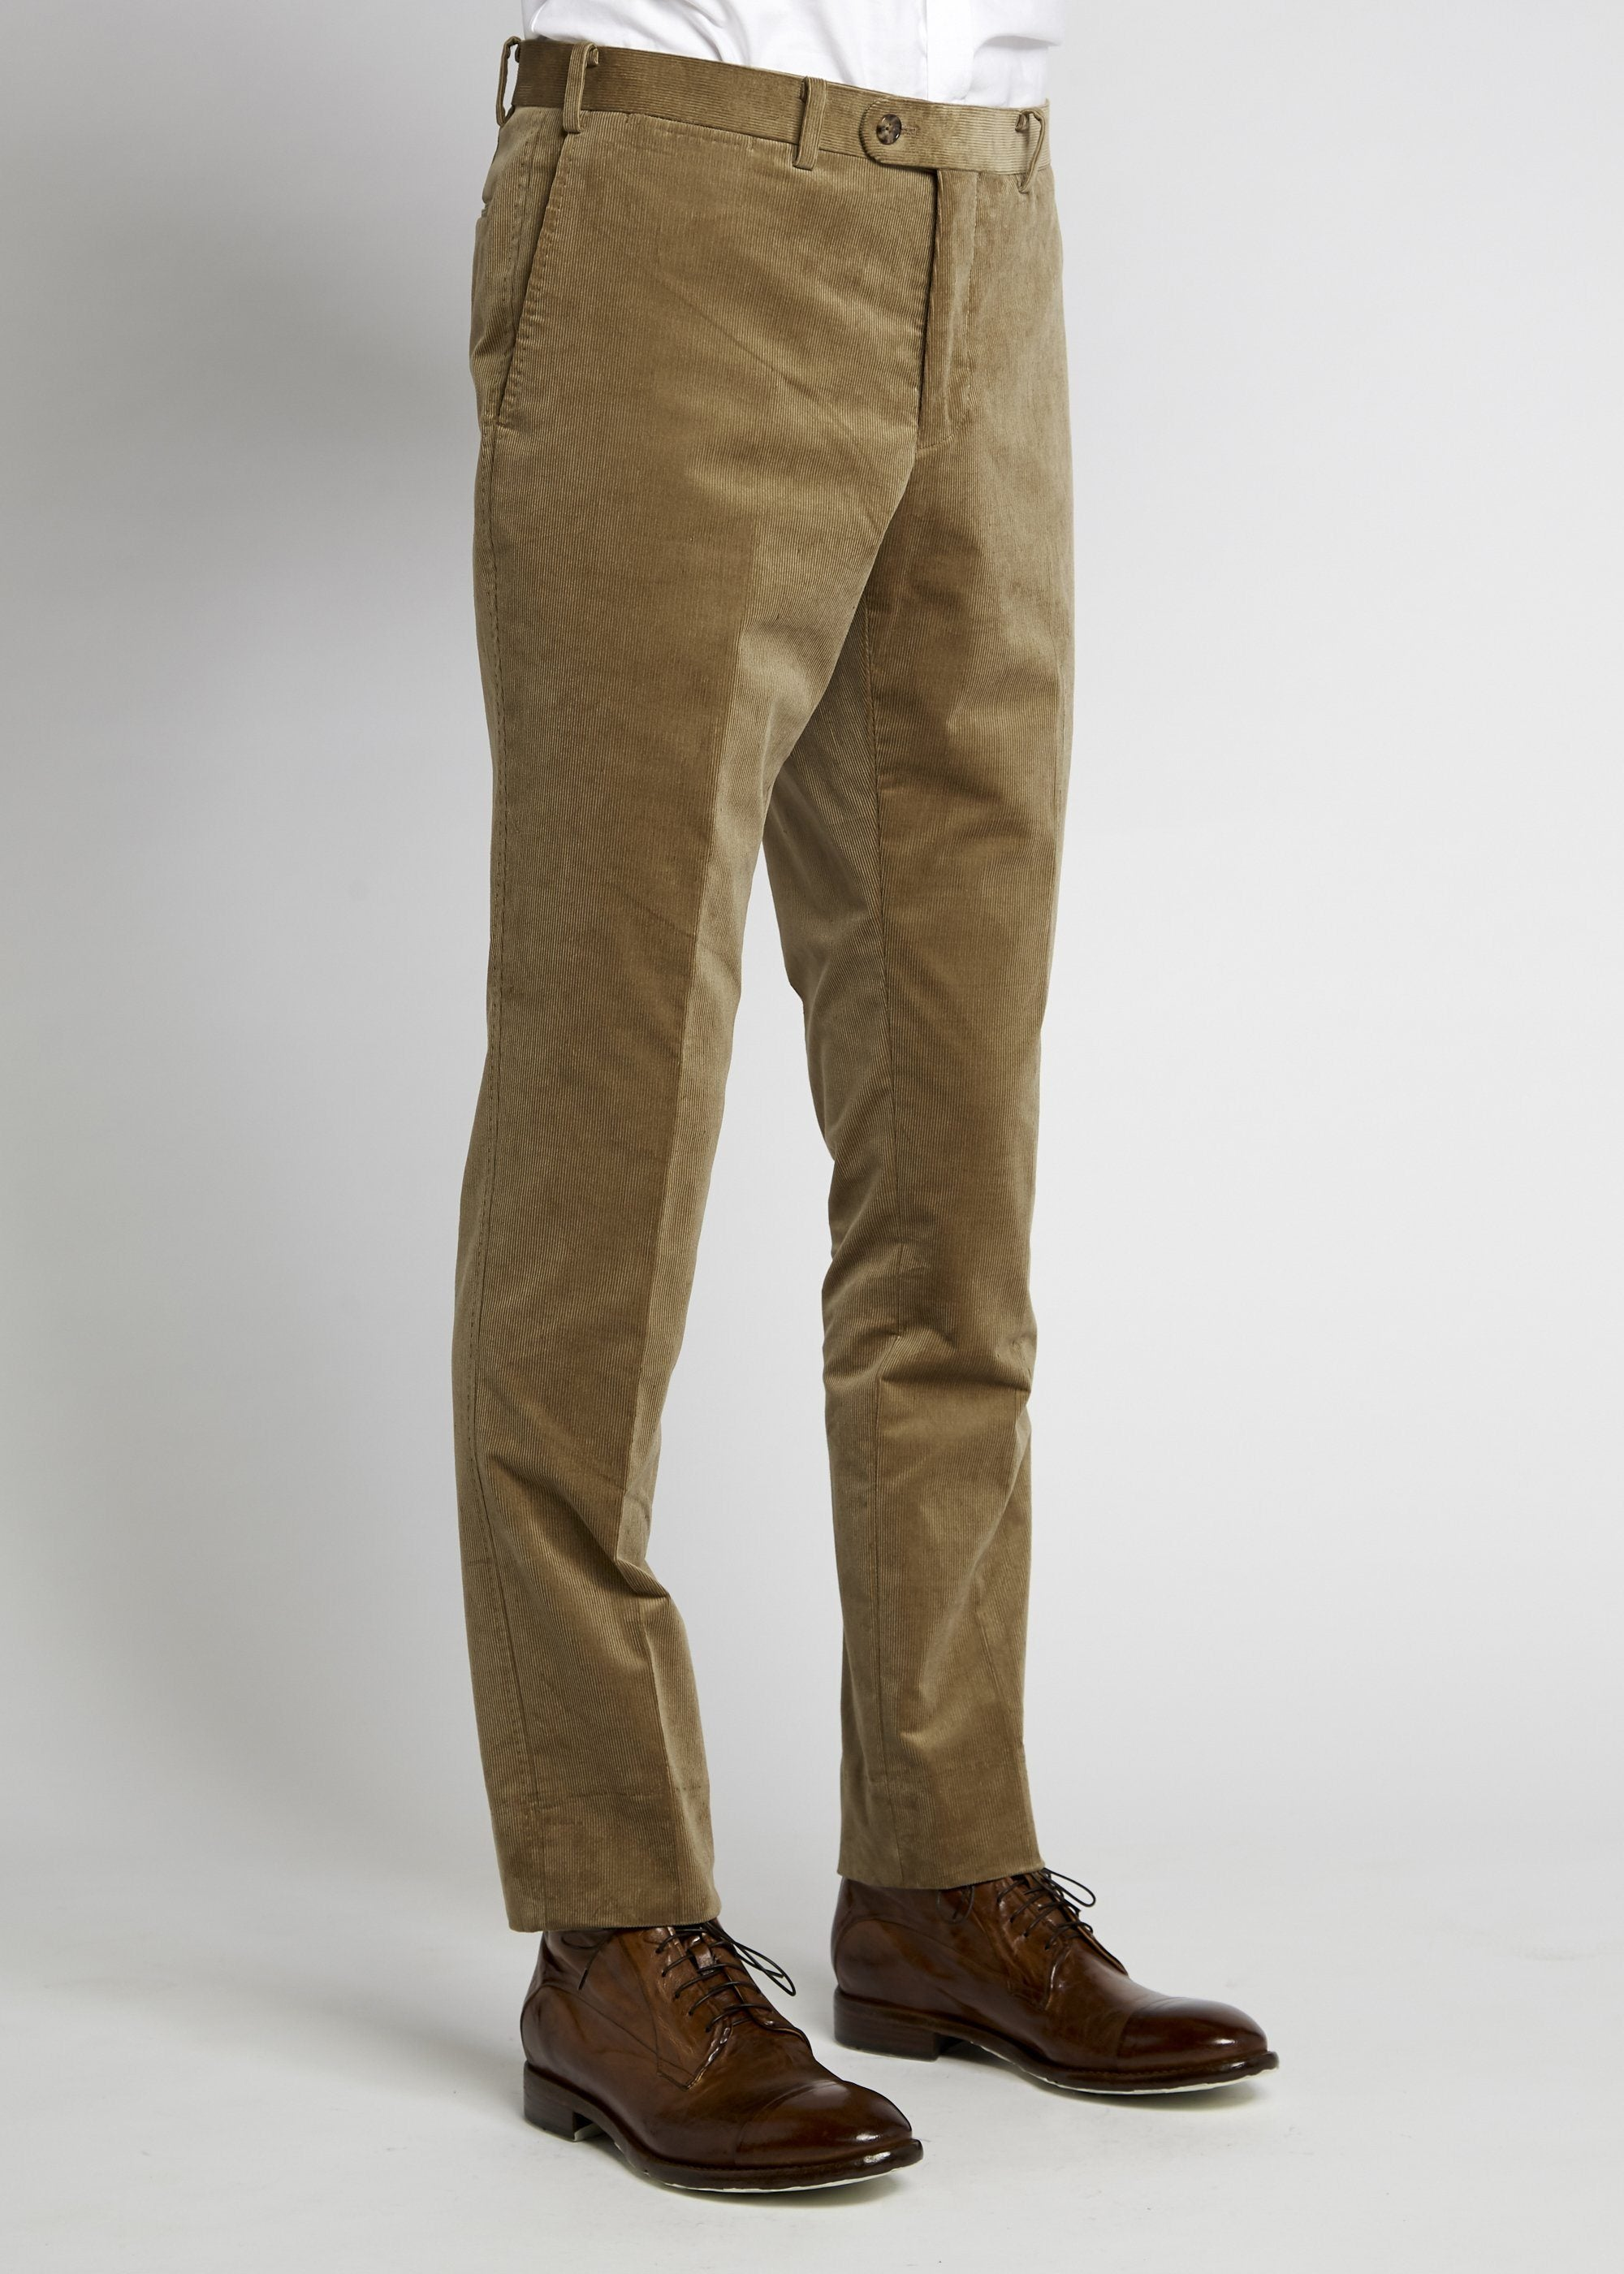 Xander Trouser - Camel Cord